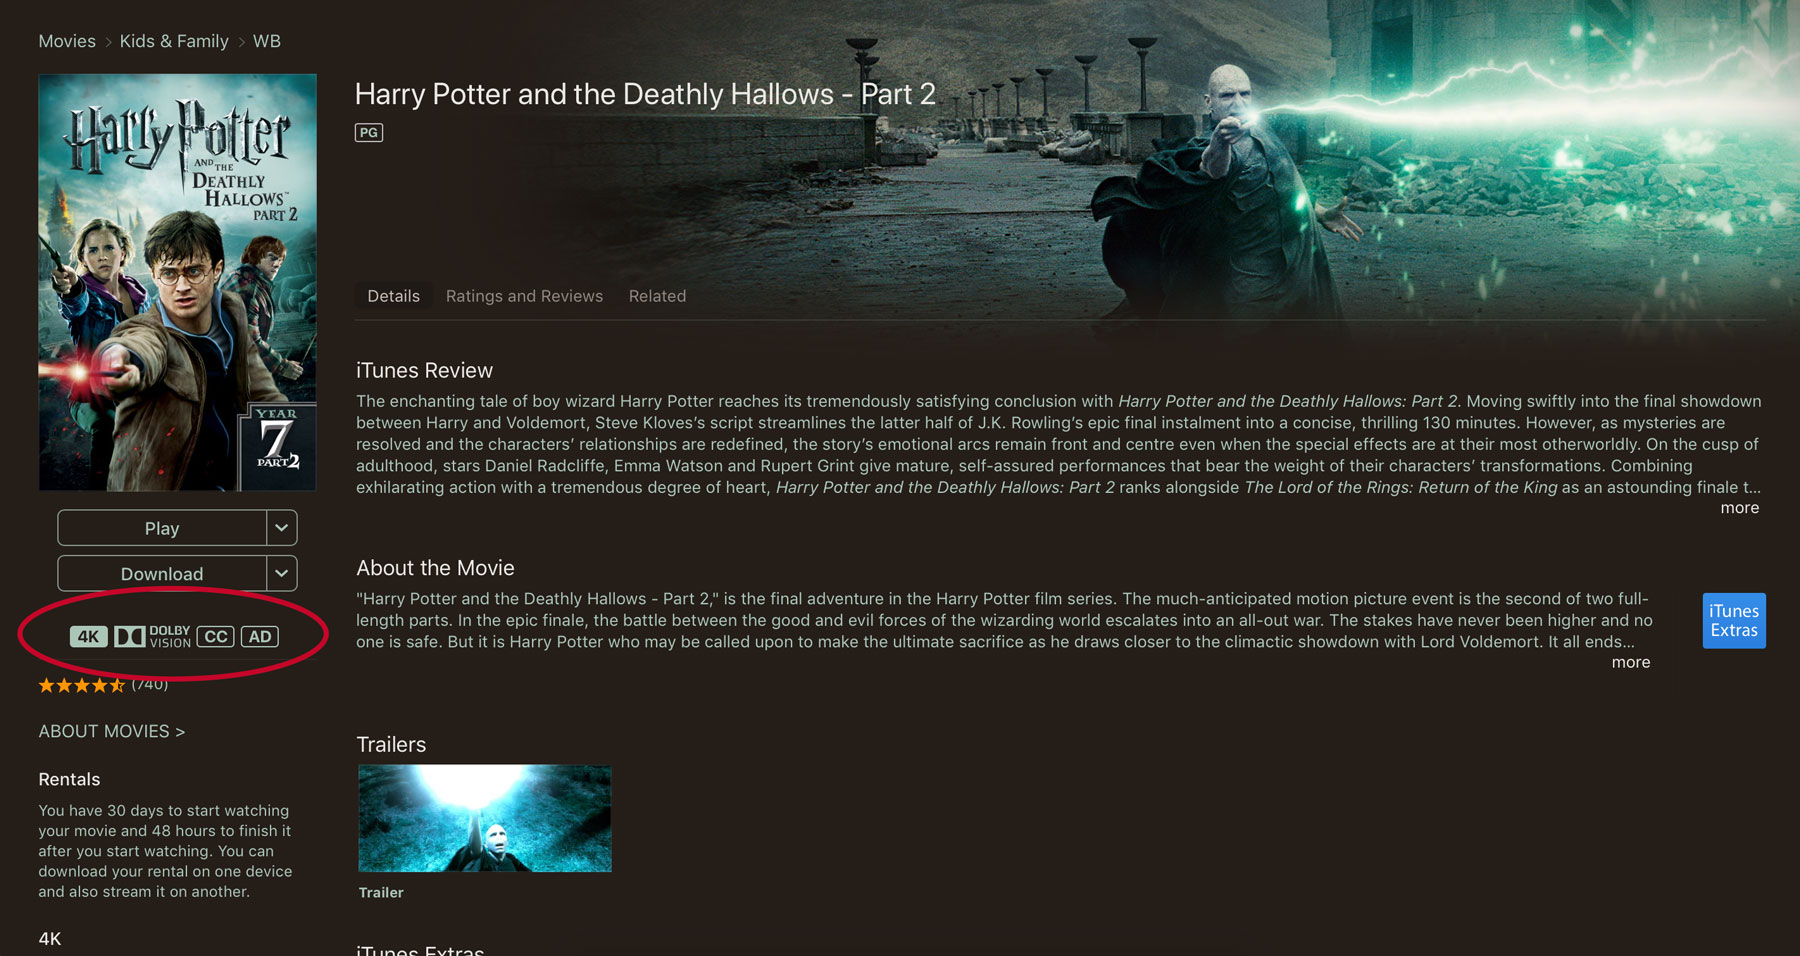 Harry Potter and the dealthy hallows part 2 4K itunes